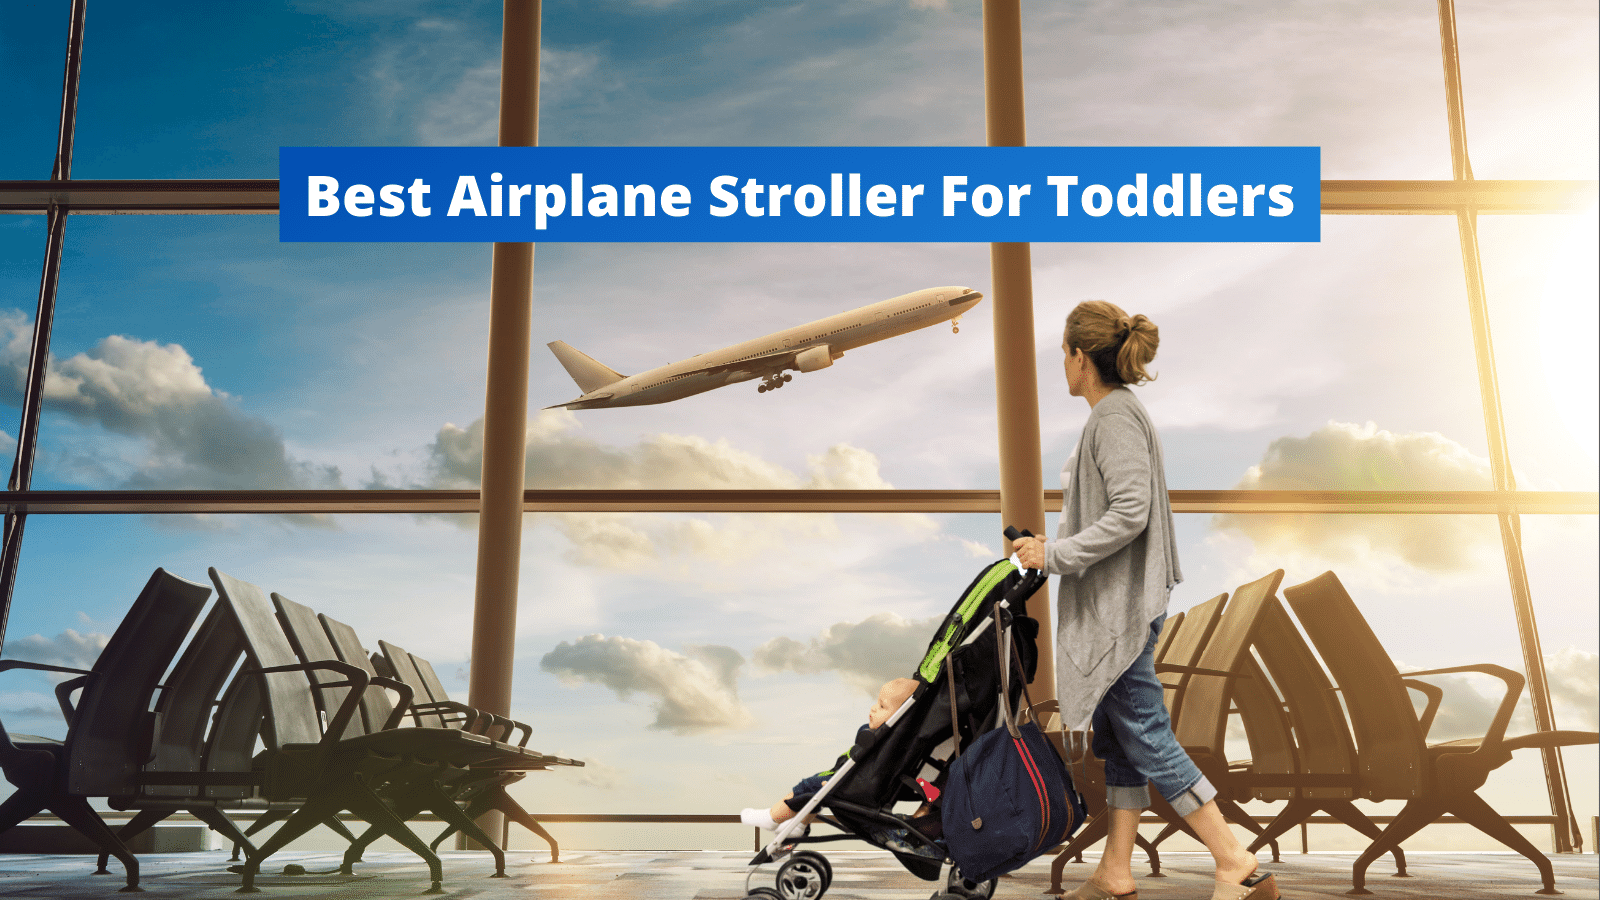 Best Airplane Stroller For Toddlers - Lightweight, Compact, Portable, And Fit In Airplane Overhead Bin